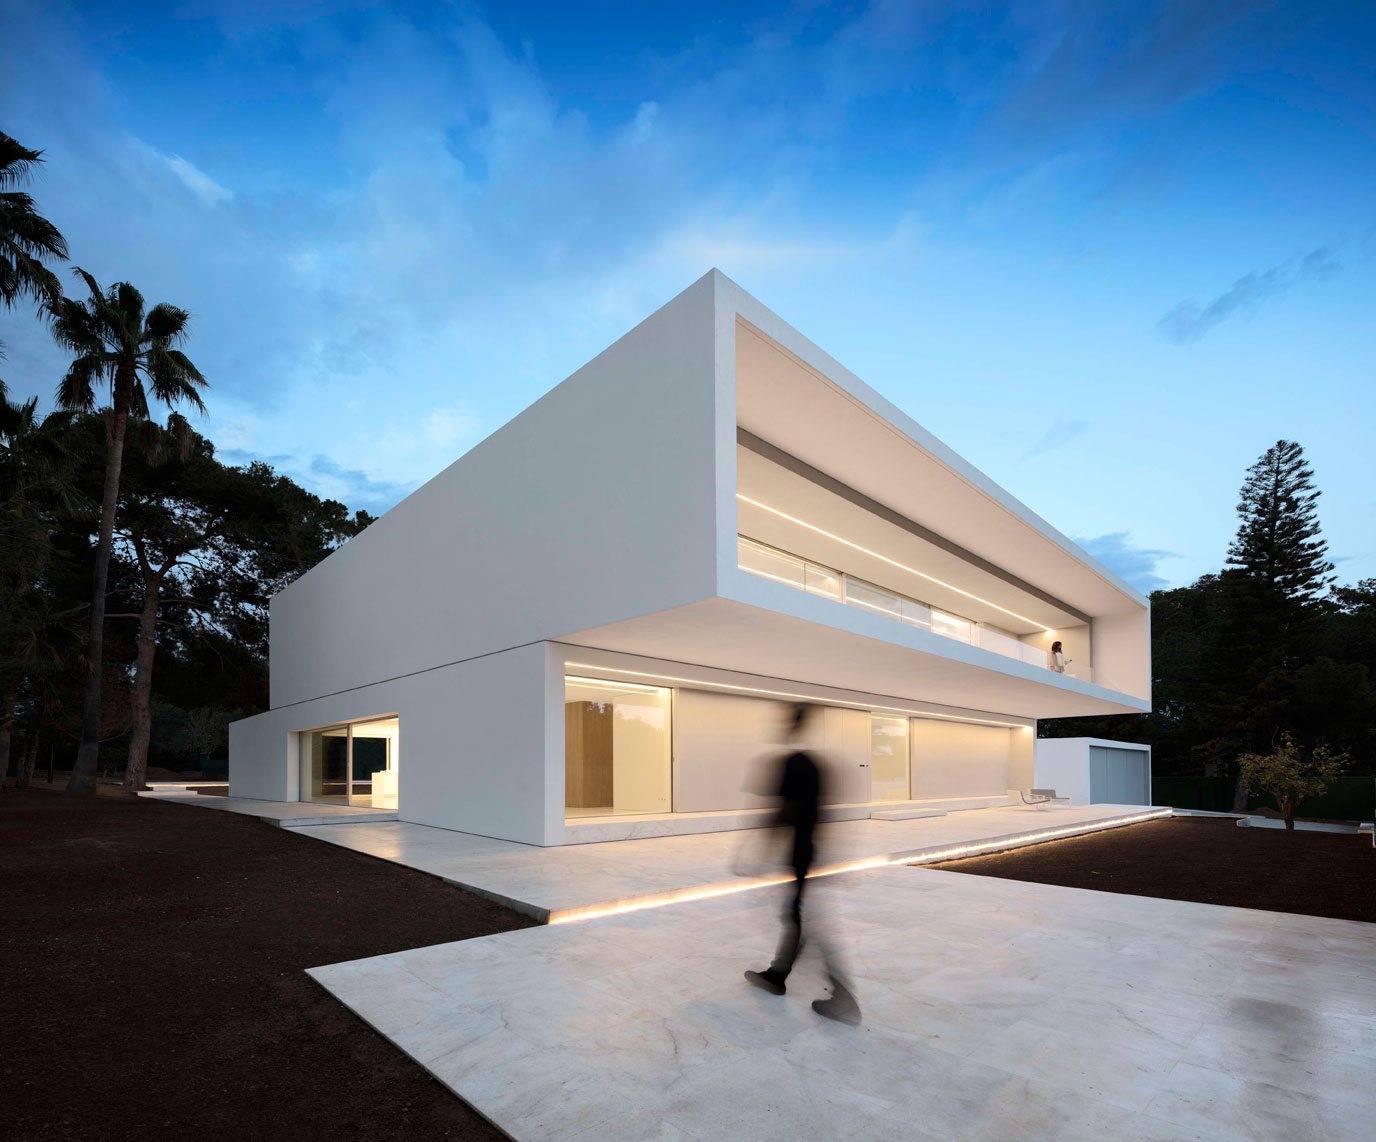 dissenycv-es-fran-silvestre-arquitectos_-house-betwwen-the-pine-forest_-1